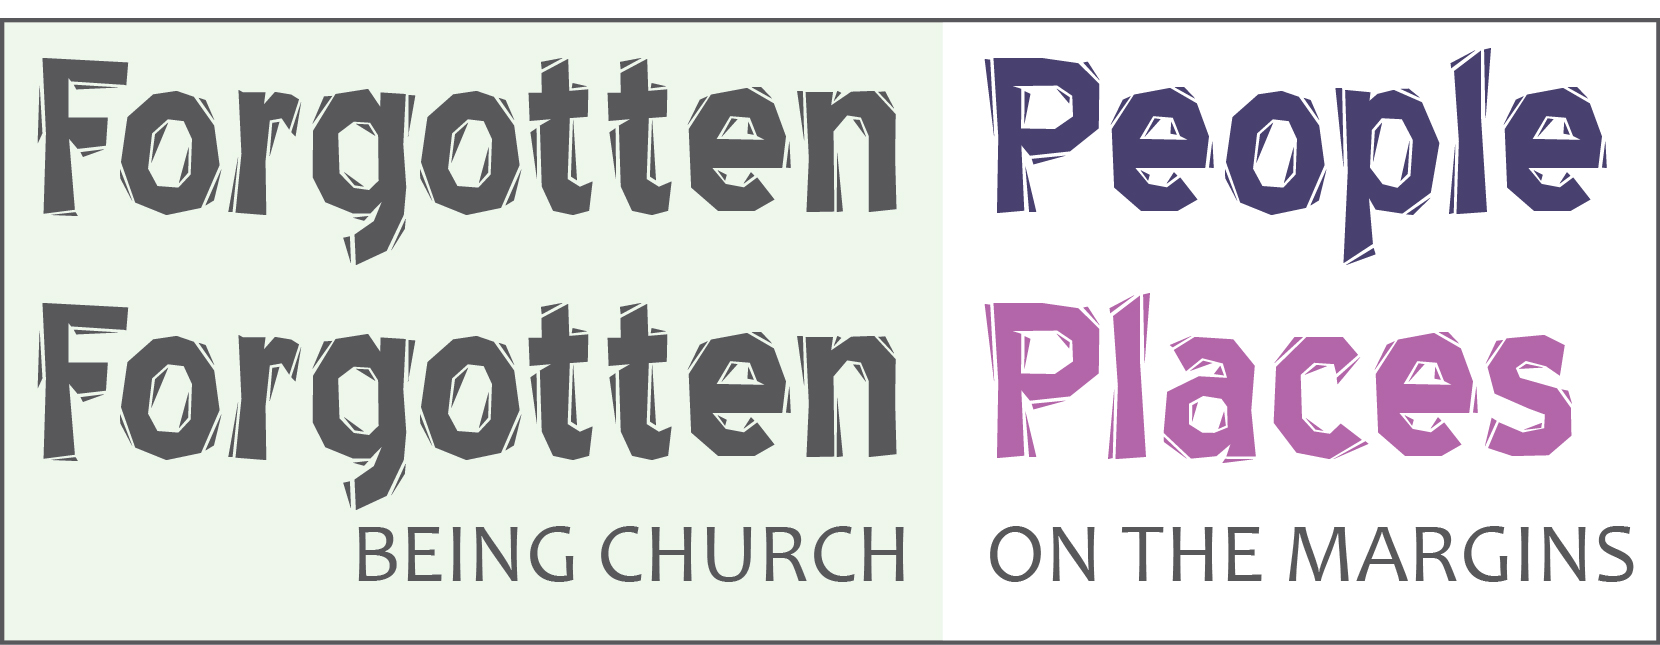 https://www.justice-and-peace.org.uk/cms/wp-content/uploads/2019/01/Forgotten-People-Forgotten-Places-logo-second-draft-1.jpg